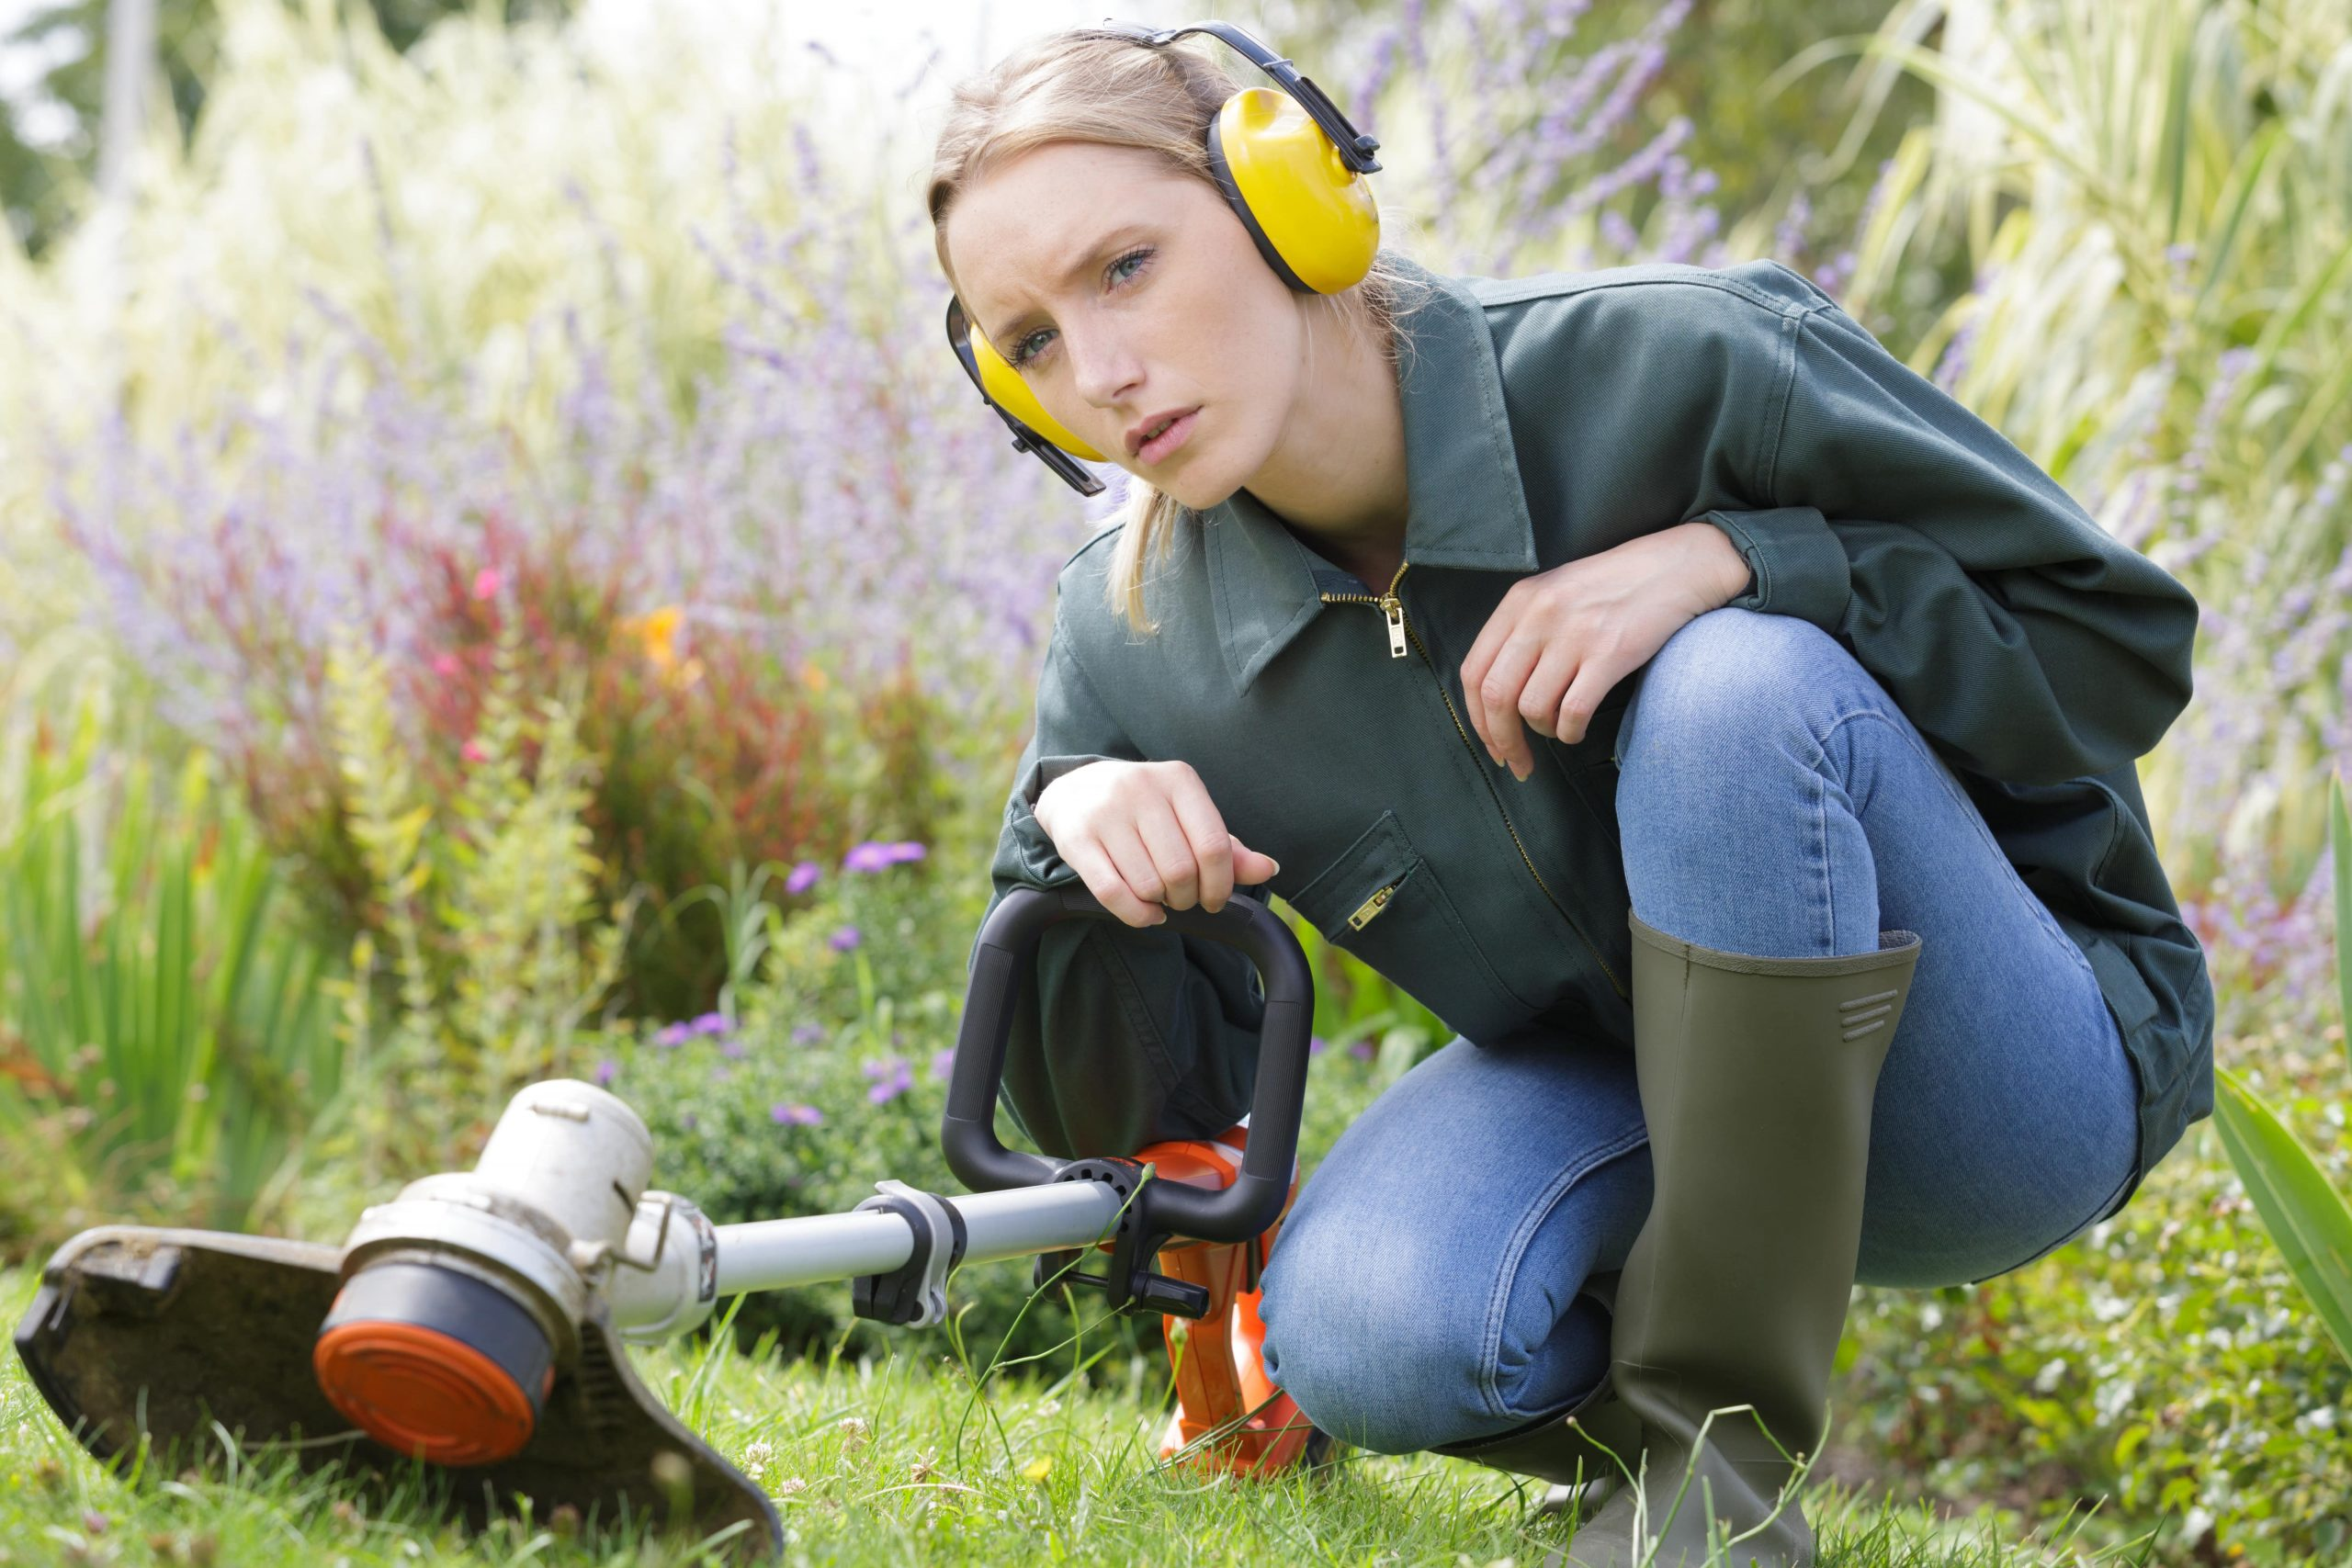 Woman using a cordless strimmer.